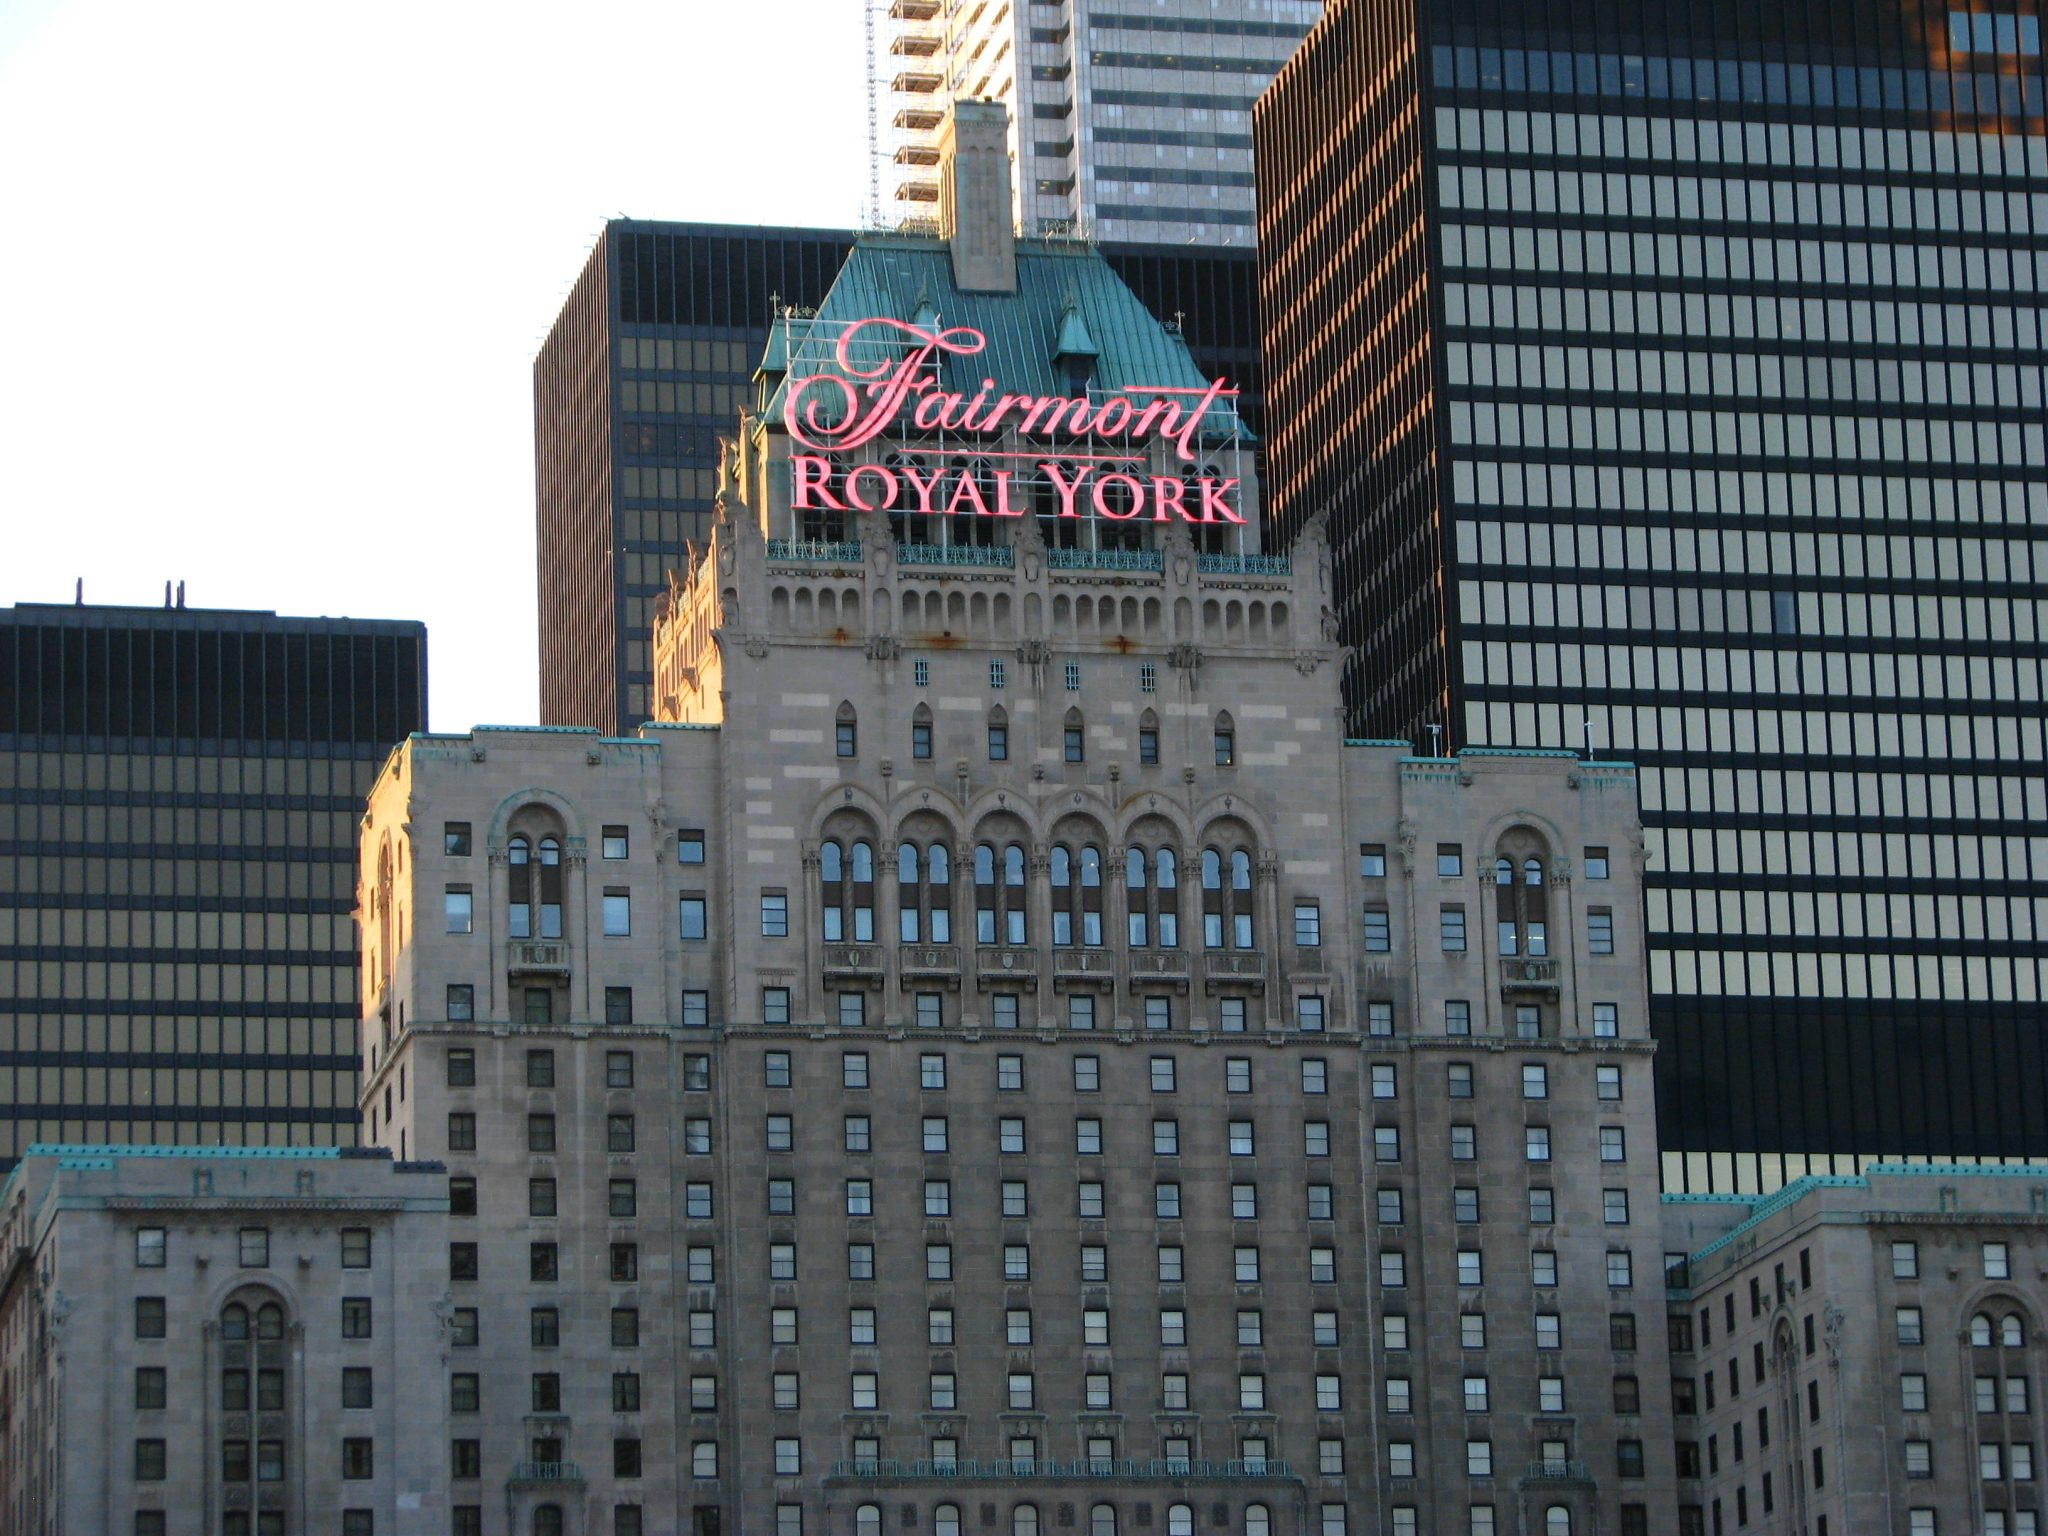 A Father S Day Fit For A King At The Fairmont Royal York Hotel